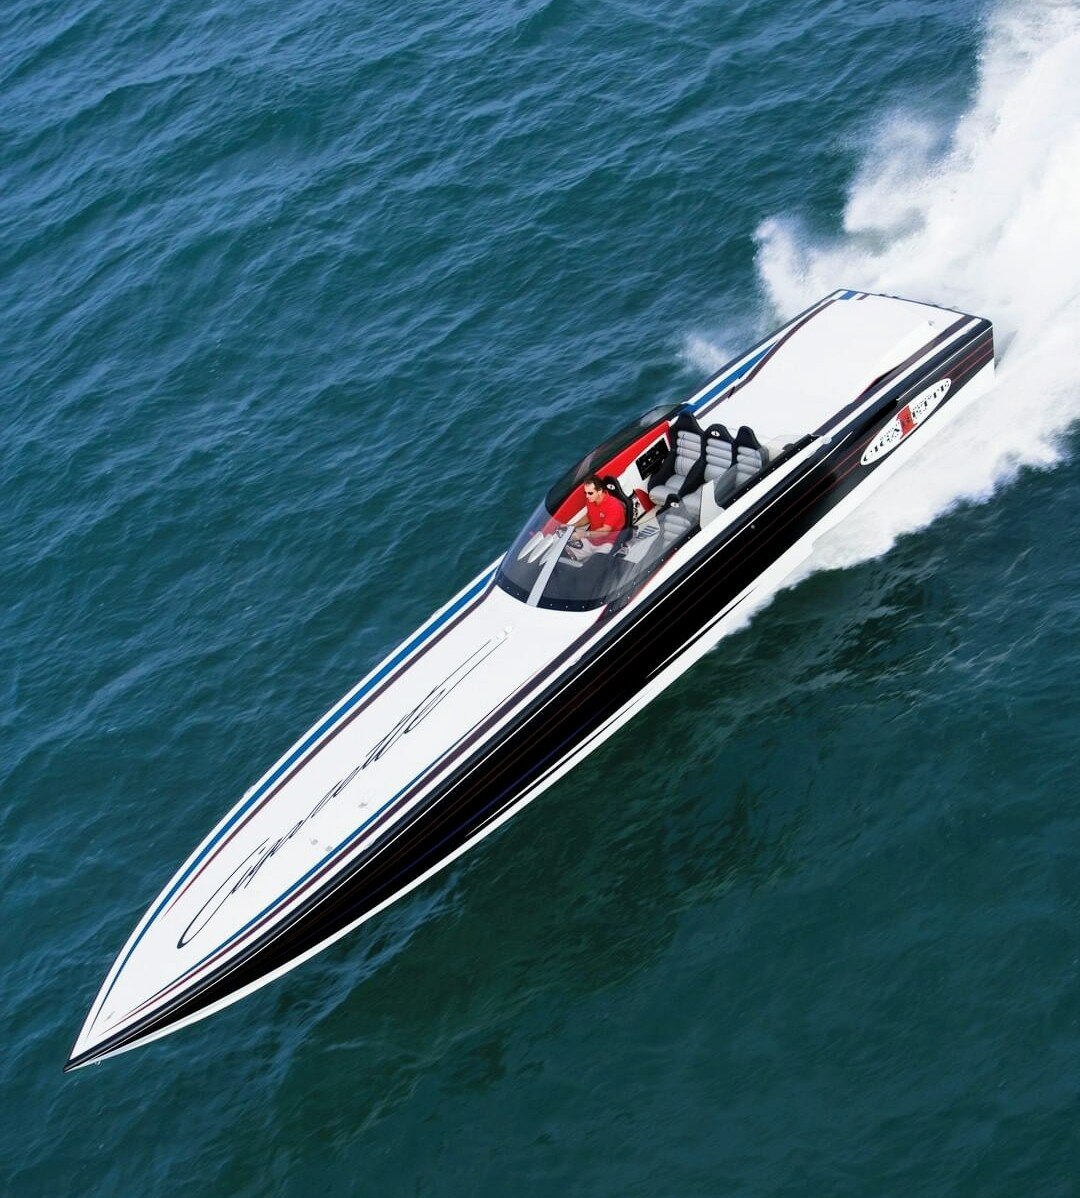 Design - An ultra rare one off 46' Cigarette. With a full windshield and sit down seating, this is the epitome of a luxury offshore sport boat. Imagine it with outboards.